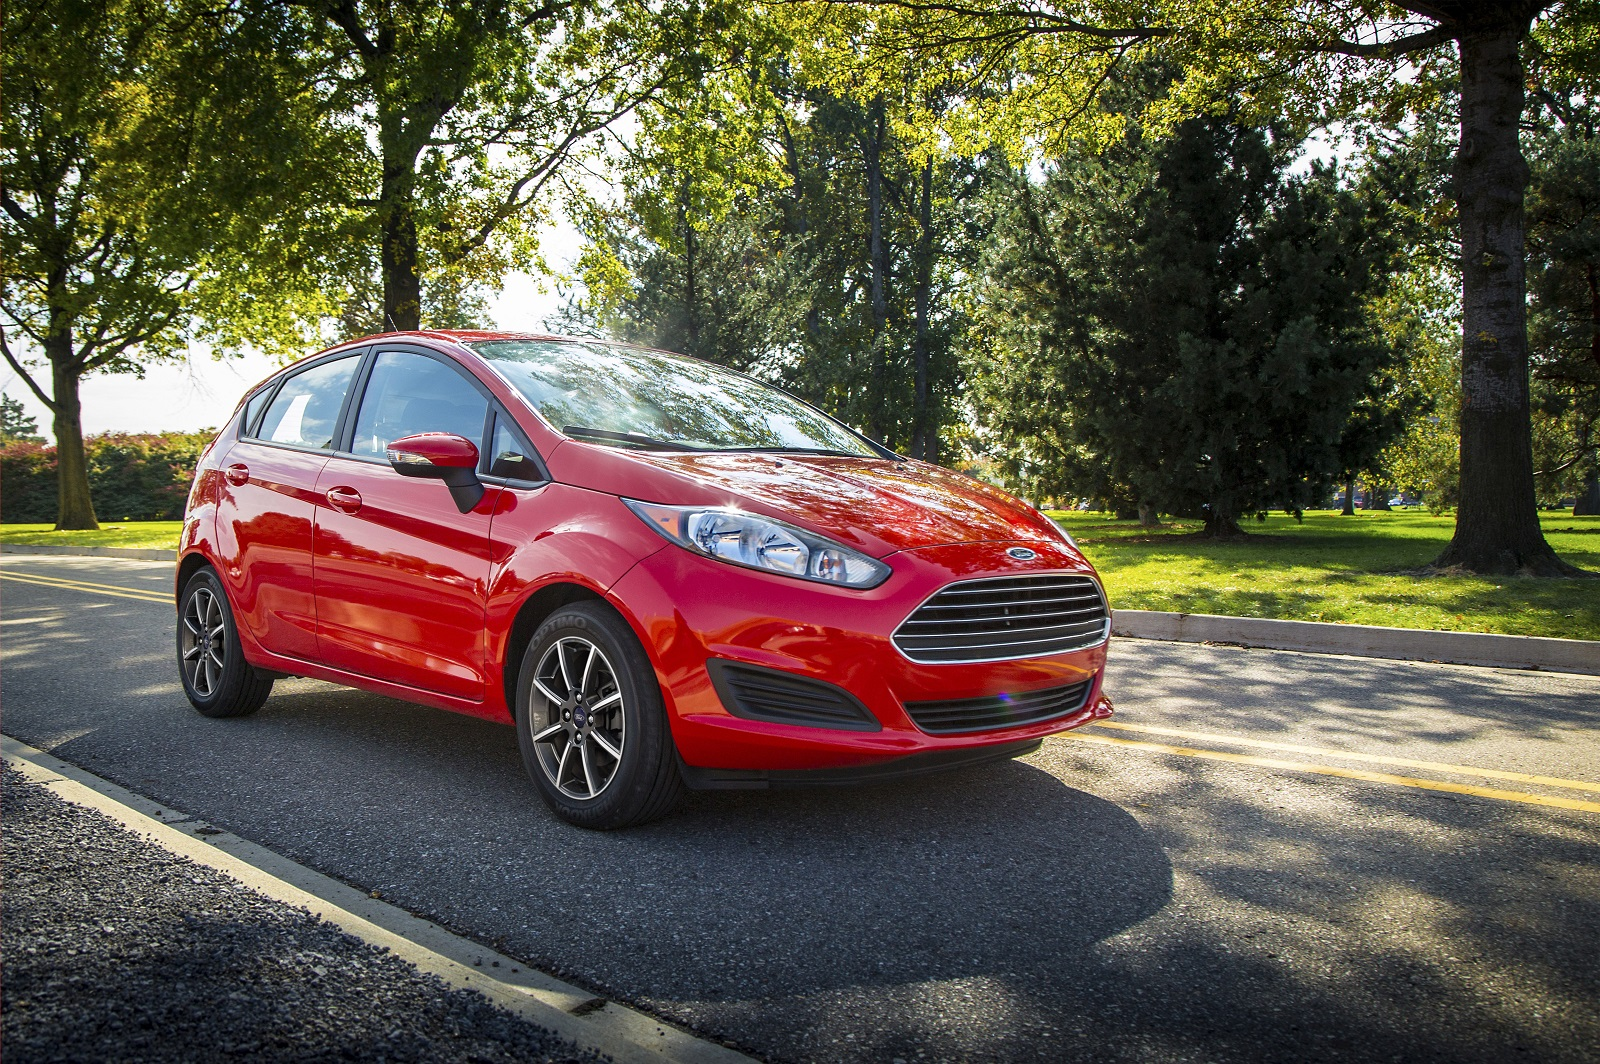 2015 Ford Fiesta Safety Review And Crash Test Ratings